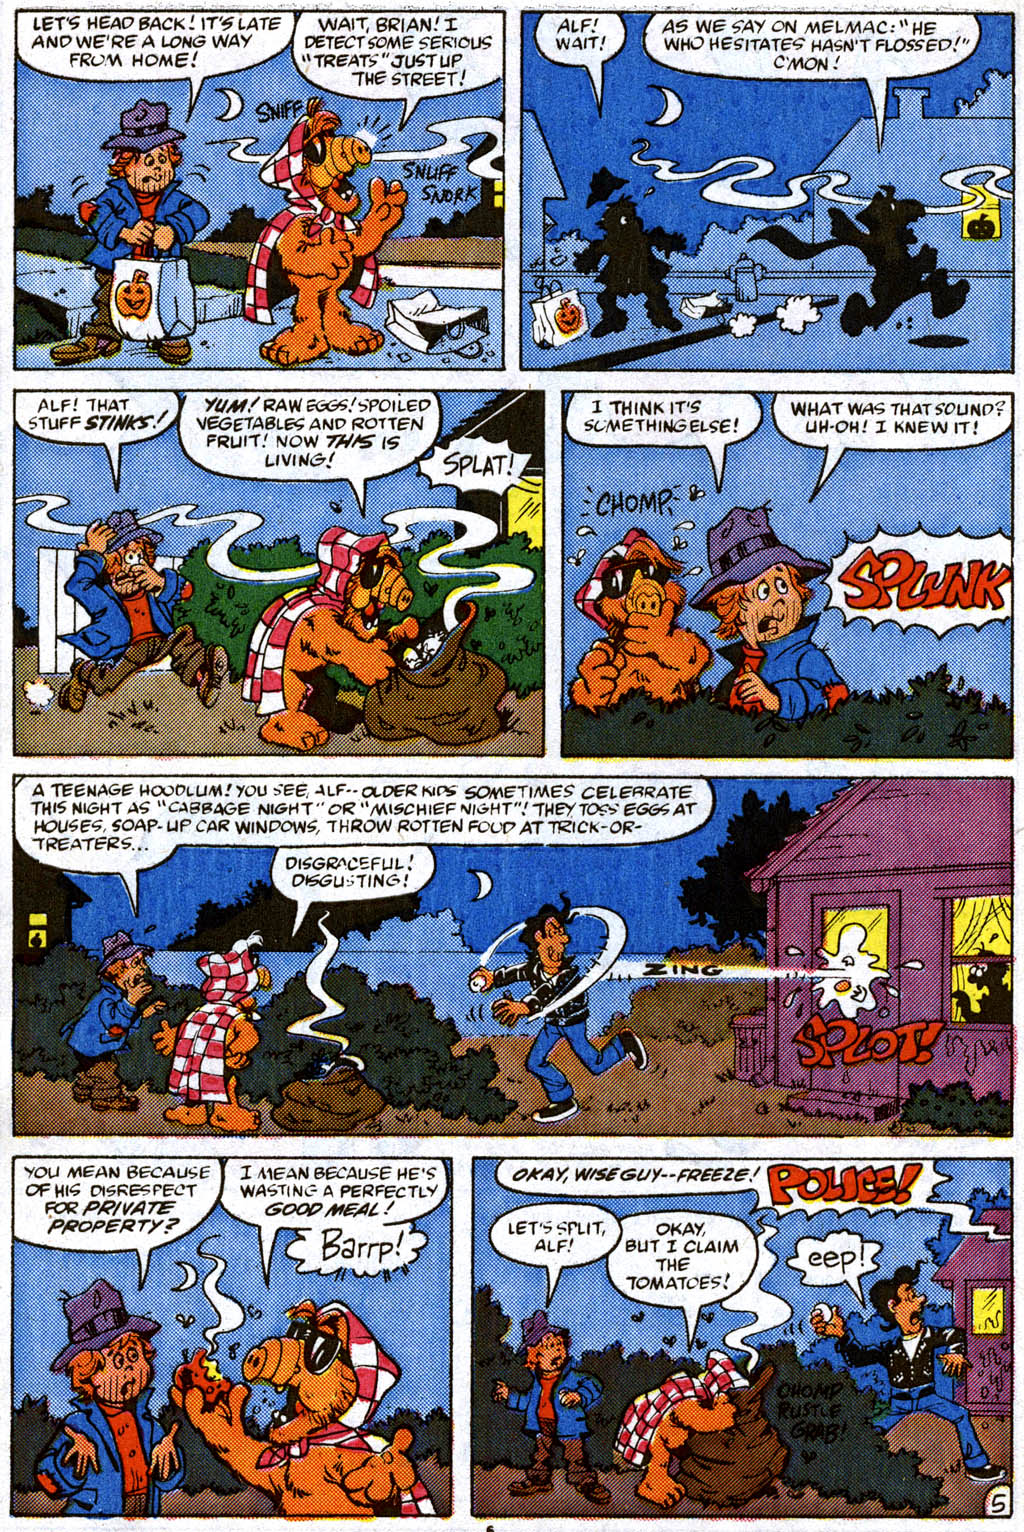 Read online ALF comic -  Issue #11 - 6